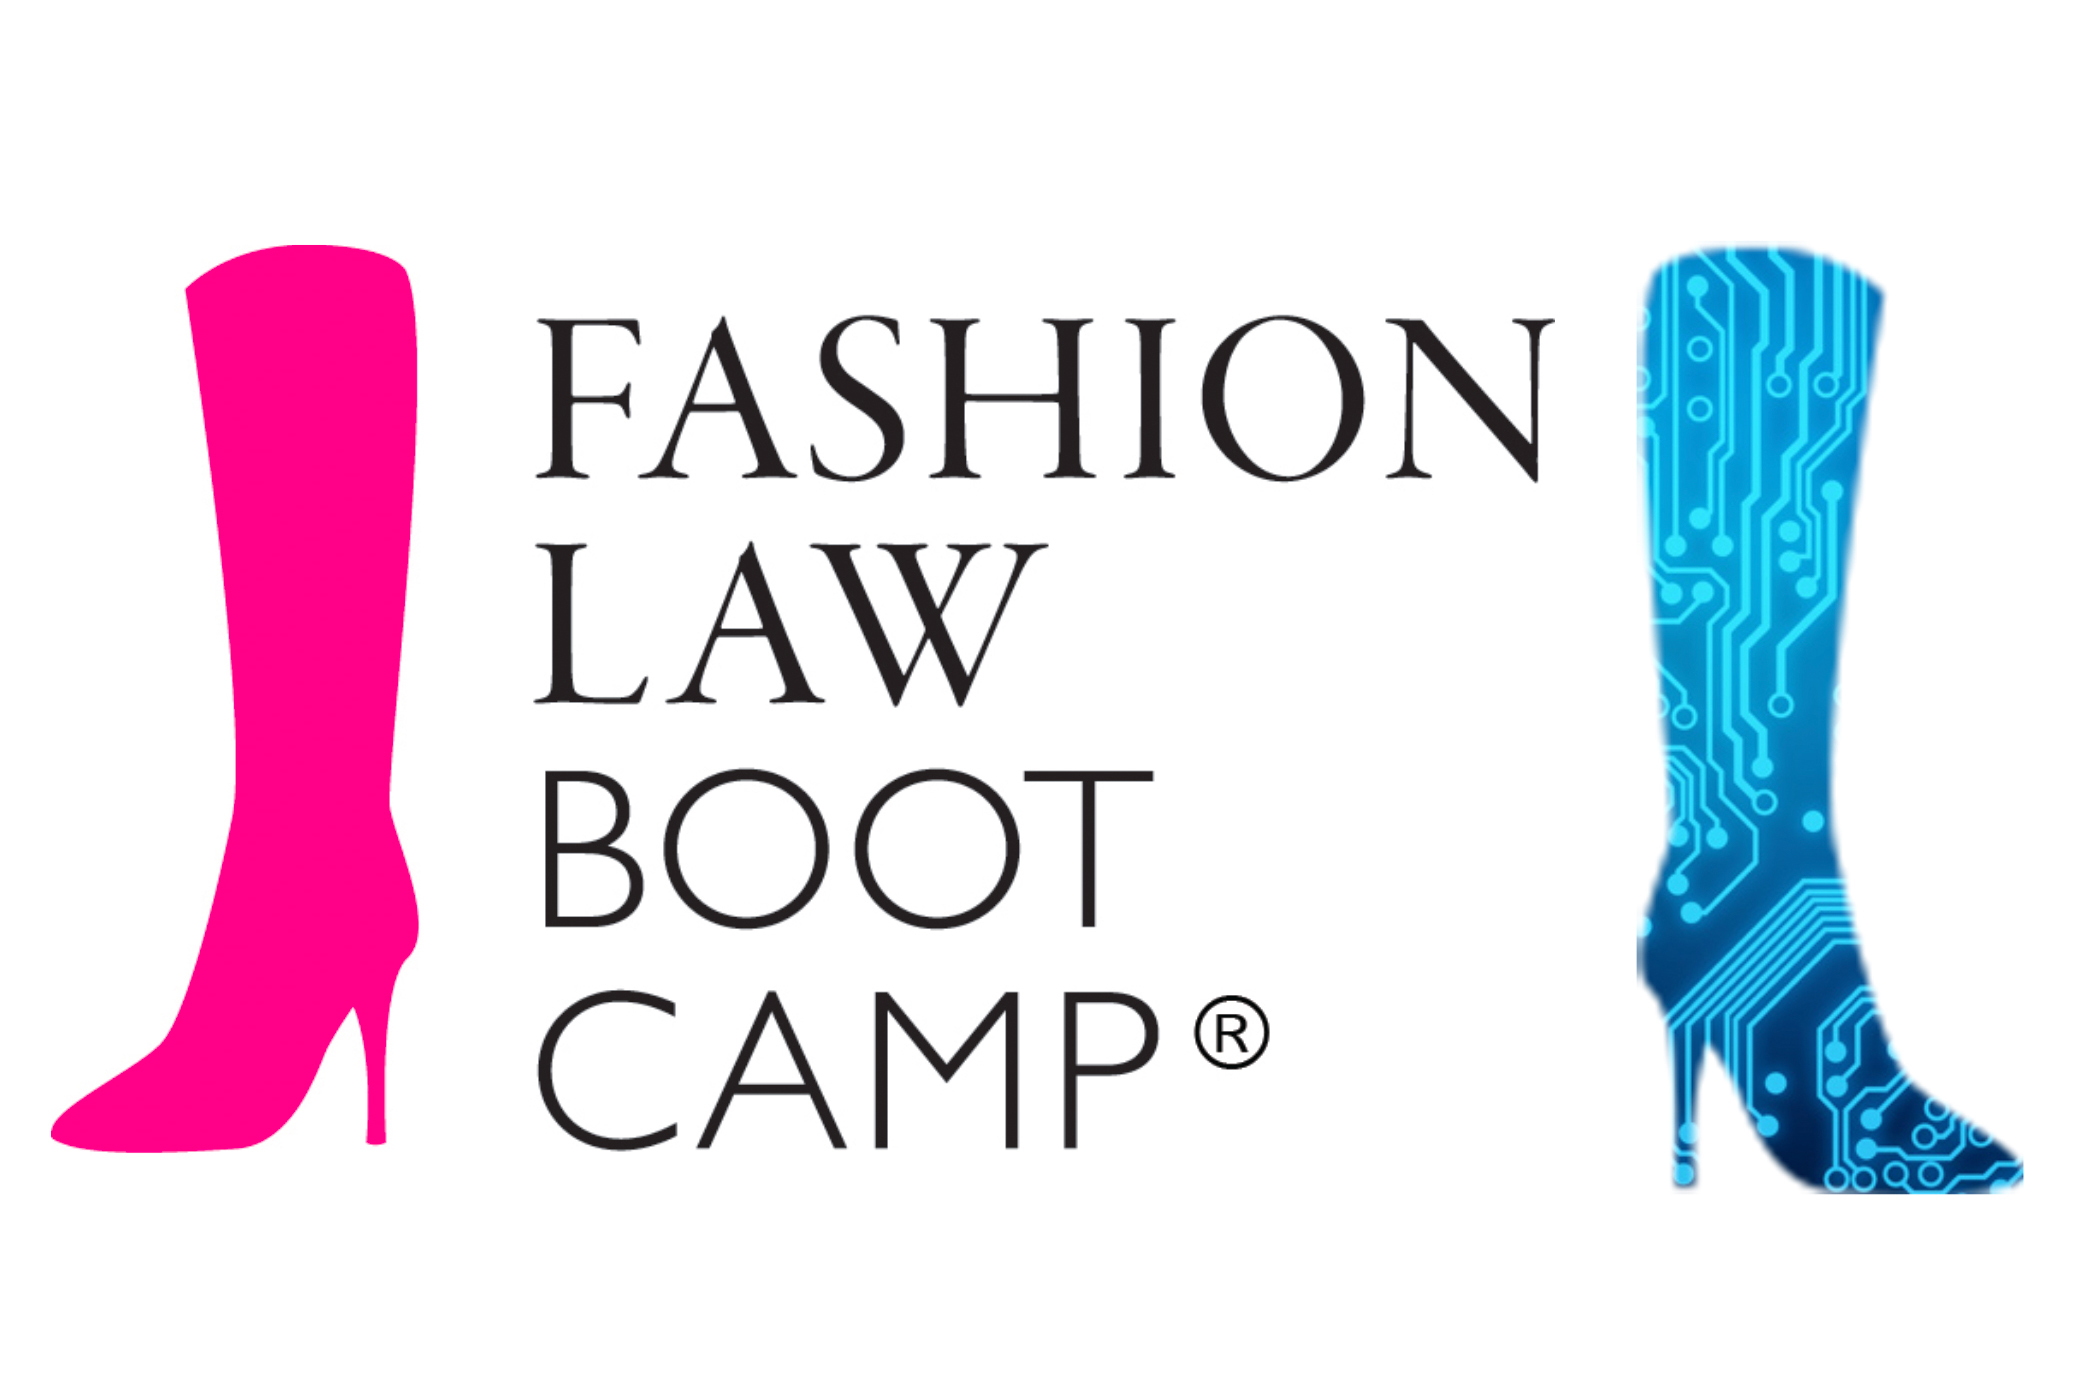 Fashion Law Bootcamp - New York and Silicon Valley